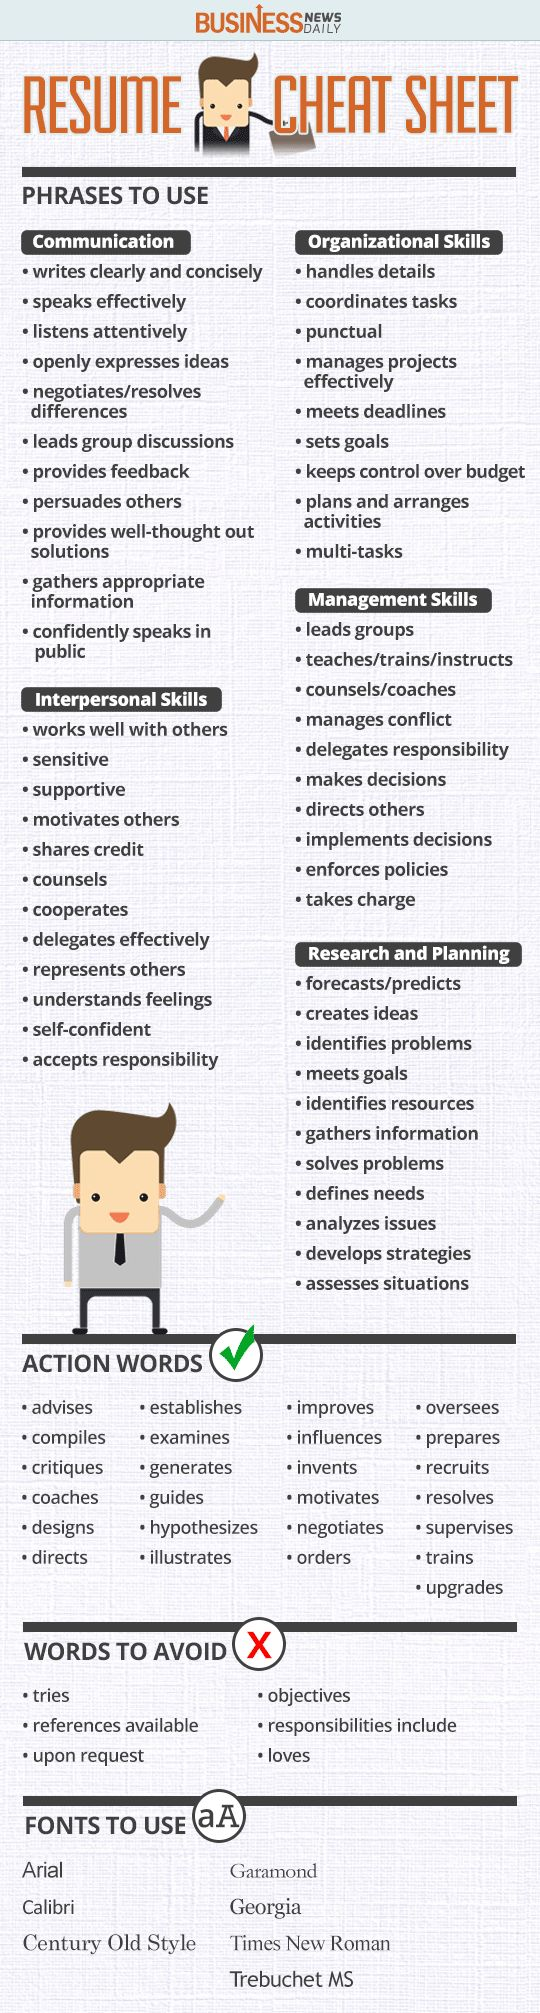 Opposenewapstandardsus  Inspiring  Ideas About Resume On Pinterest  Cv Format Resume Cv And  With Entrancing Resume Cheat Sheet Infographic Andrews Almost Done With A Complete Unit On Employment Which With Divine Resume Tool Also List Of Customer Service Skills For Resume In Addition Kick Ass Resume And Sample Cpa Resume As Well As Image Of Resume Additionally Resume Writing Services Mn From Pinterestcom With Opposenewapstandardsus  Entrancing  Ideas About Resume On Pinterest  Cv Format Resume Cv And  With Divine Resume Cheat Sheet Infographic Andrews Almost Done With A Complete Unit On Employment Which And Inspiring Resume Tool Also List Of Customer Service Skills For Resume In Addition Kick Ass Resume From Pinterestcom